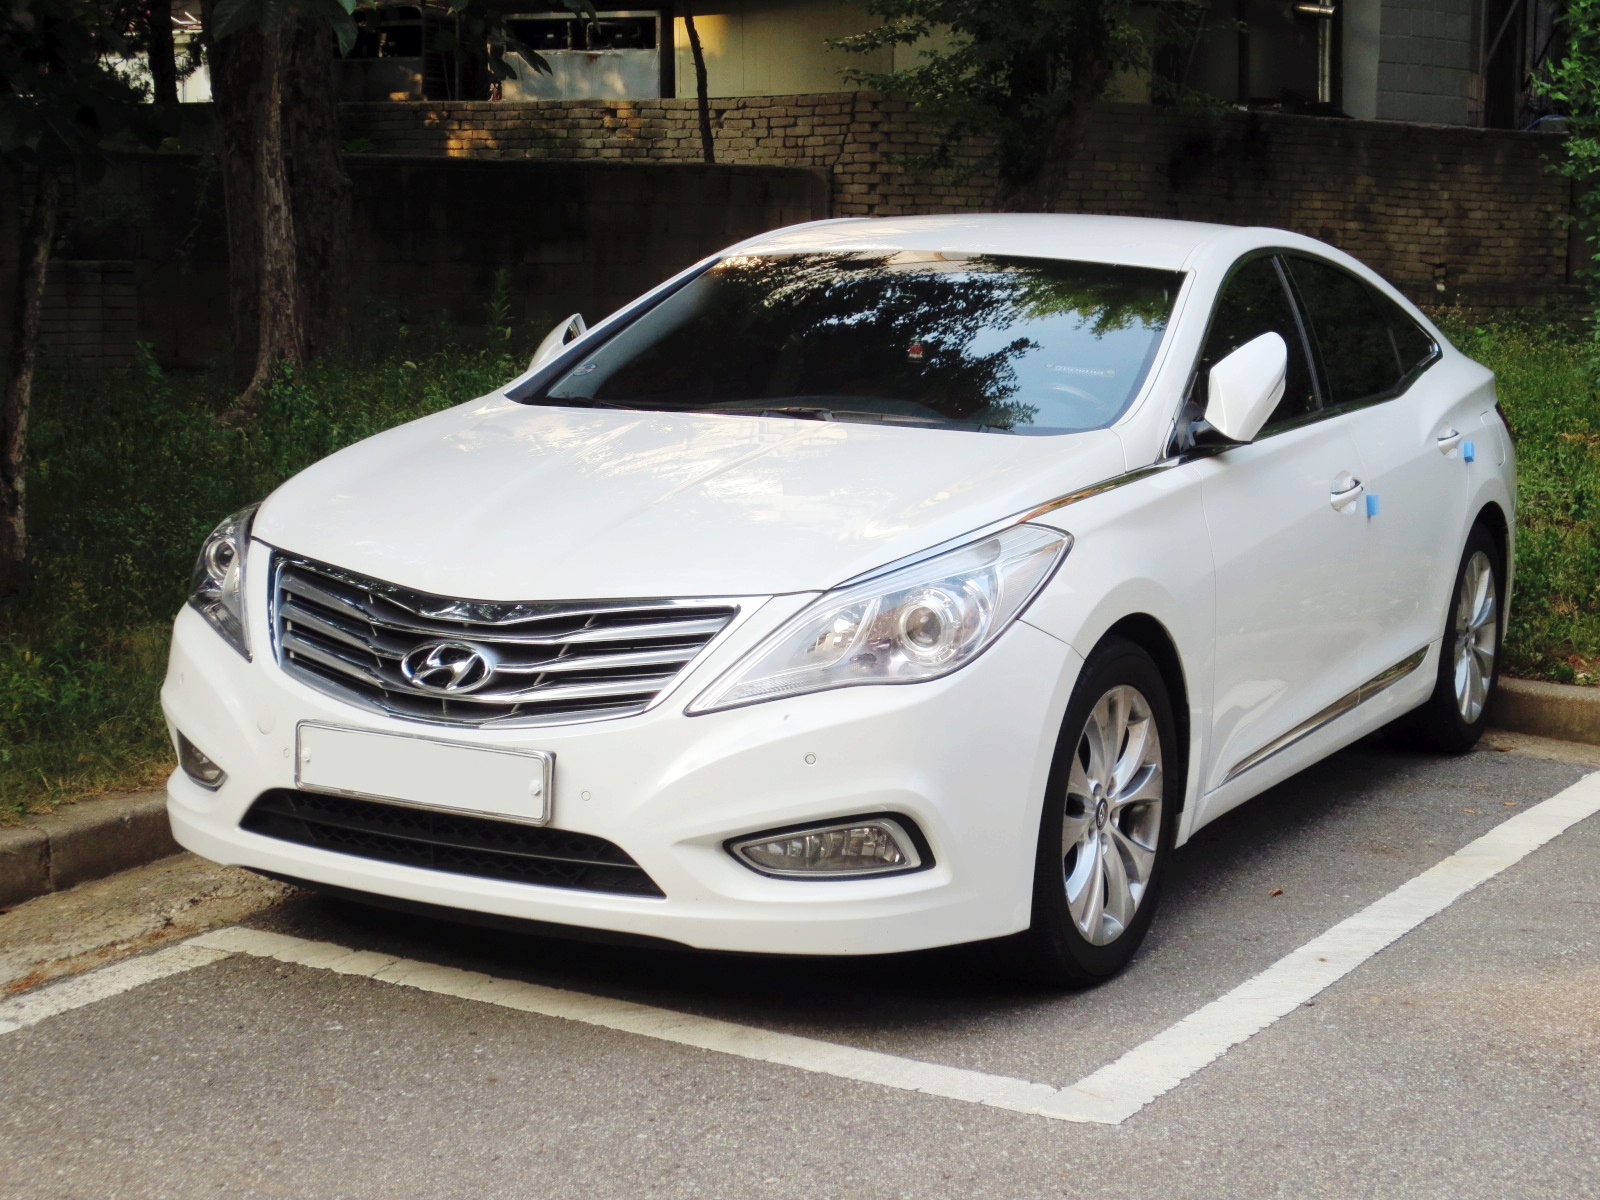 Hyundai Grandeur Wikipedia 2003 Maxima Hid Wiring Diagram Free Download